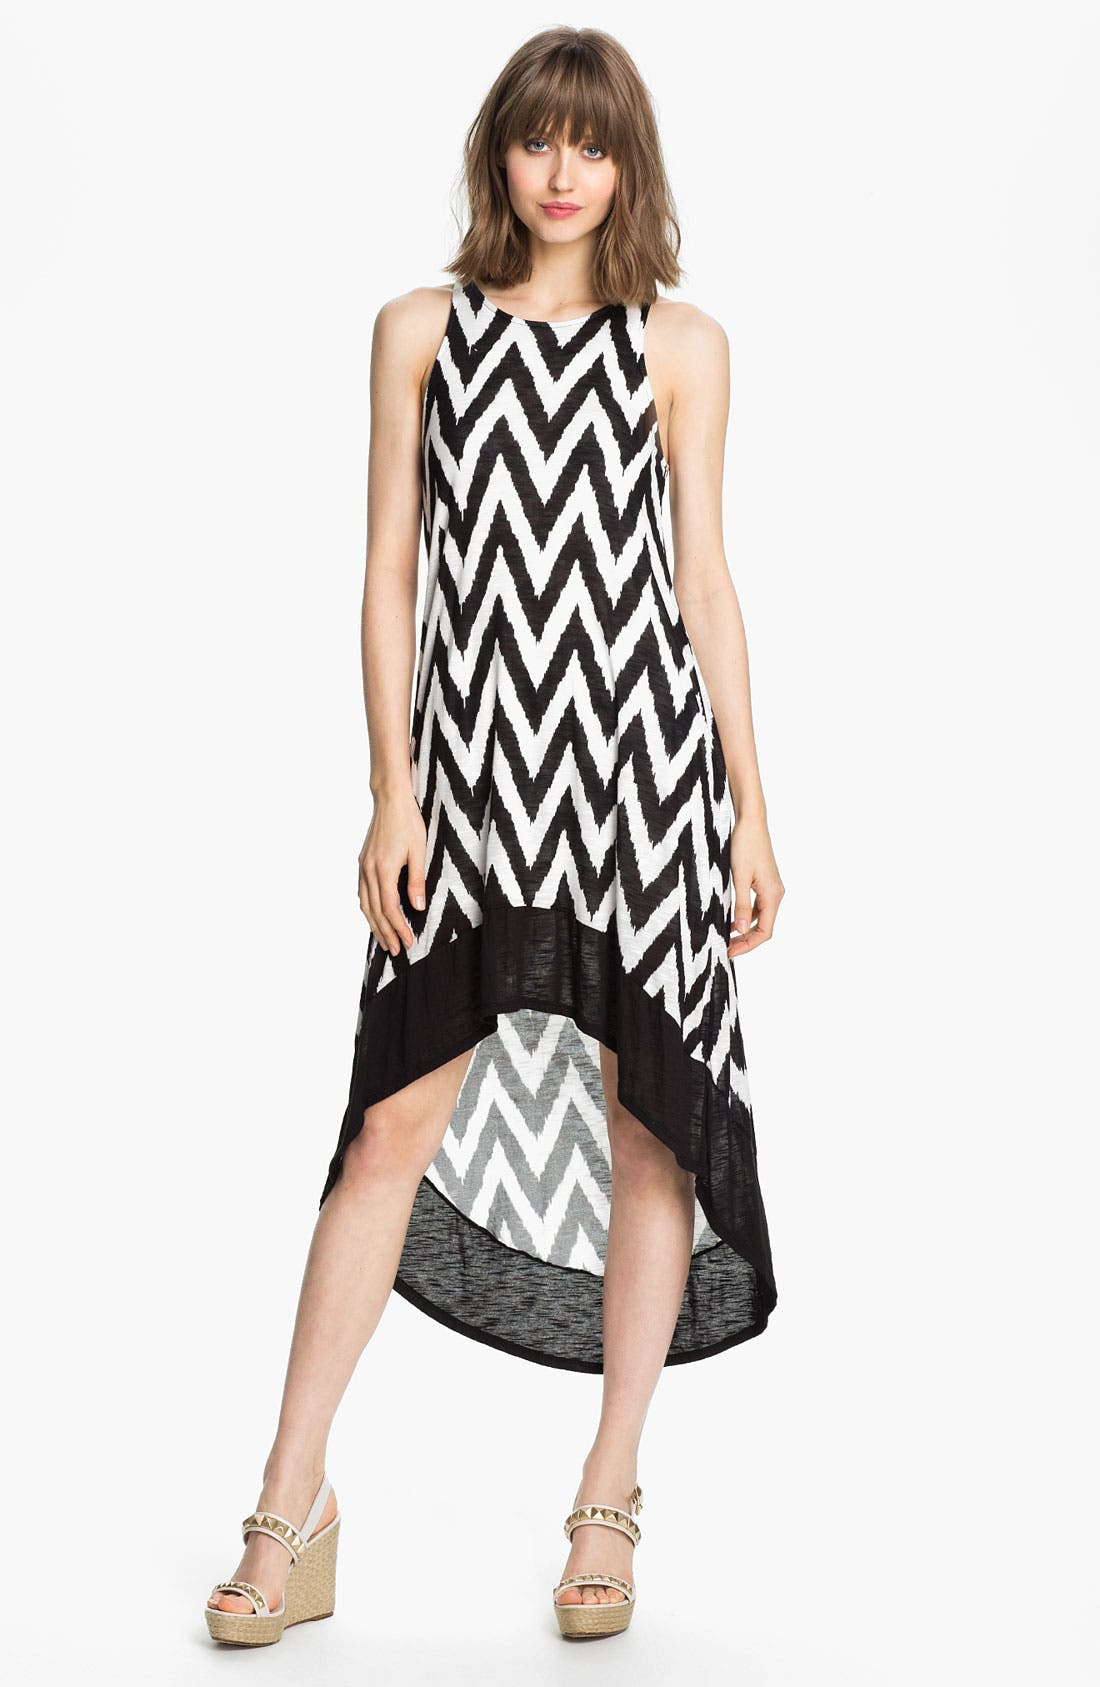 Alternate Image 1 Selected - Ella Moss 'Mazzy' Zigzag Print High/Low Dress